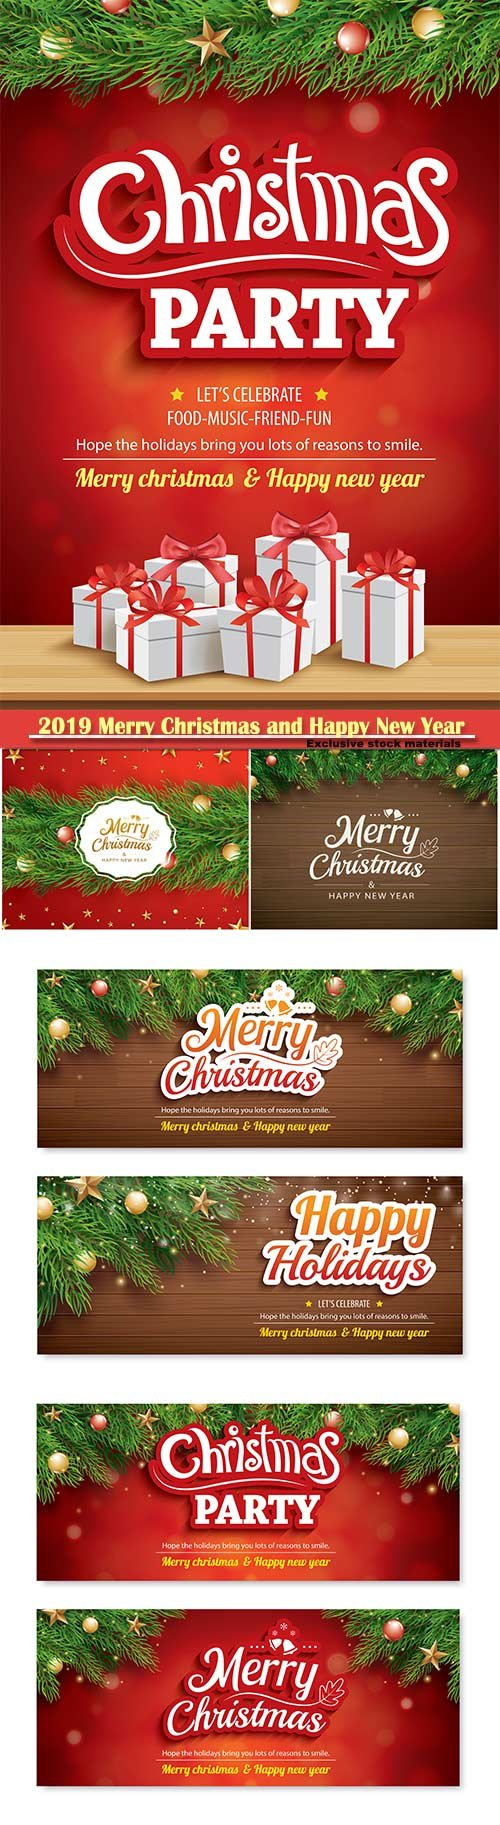 2019 Merry Christmas and Happy New Year vector design # 13